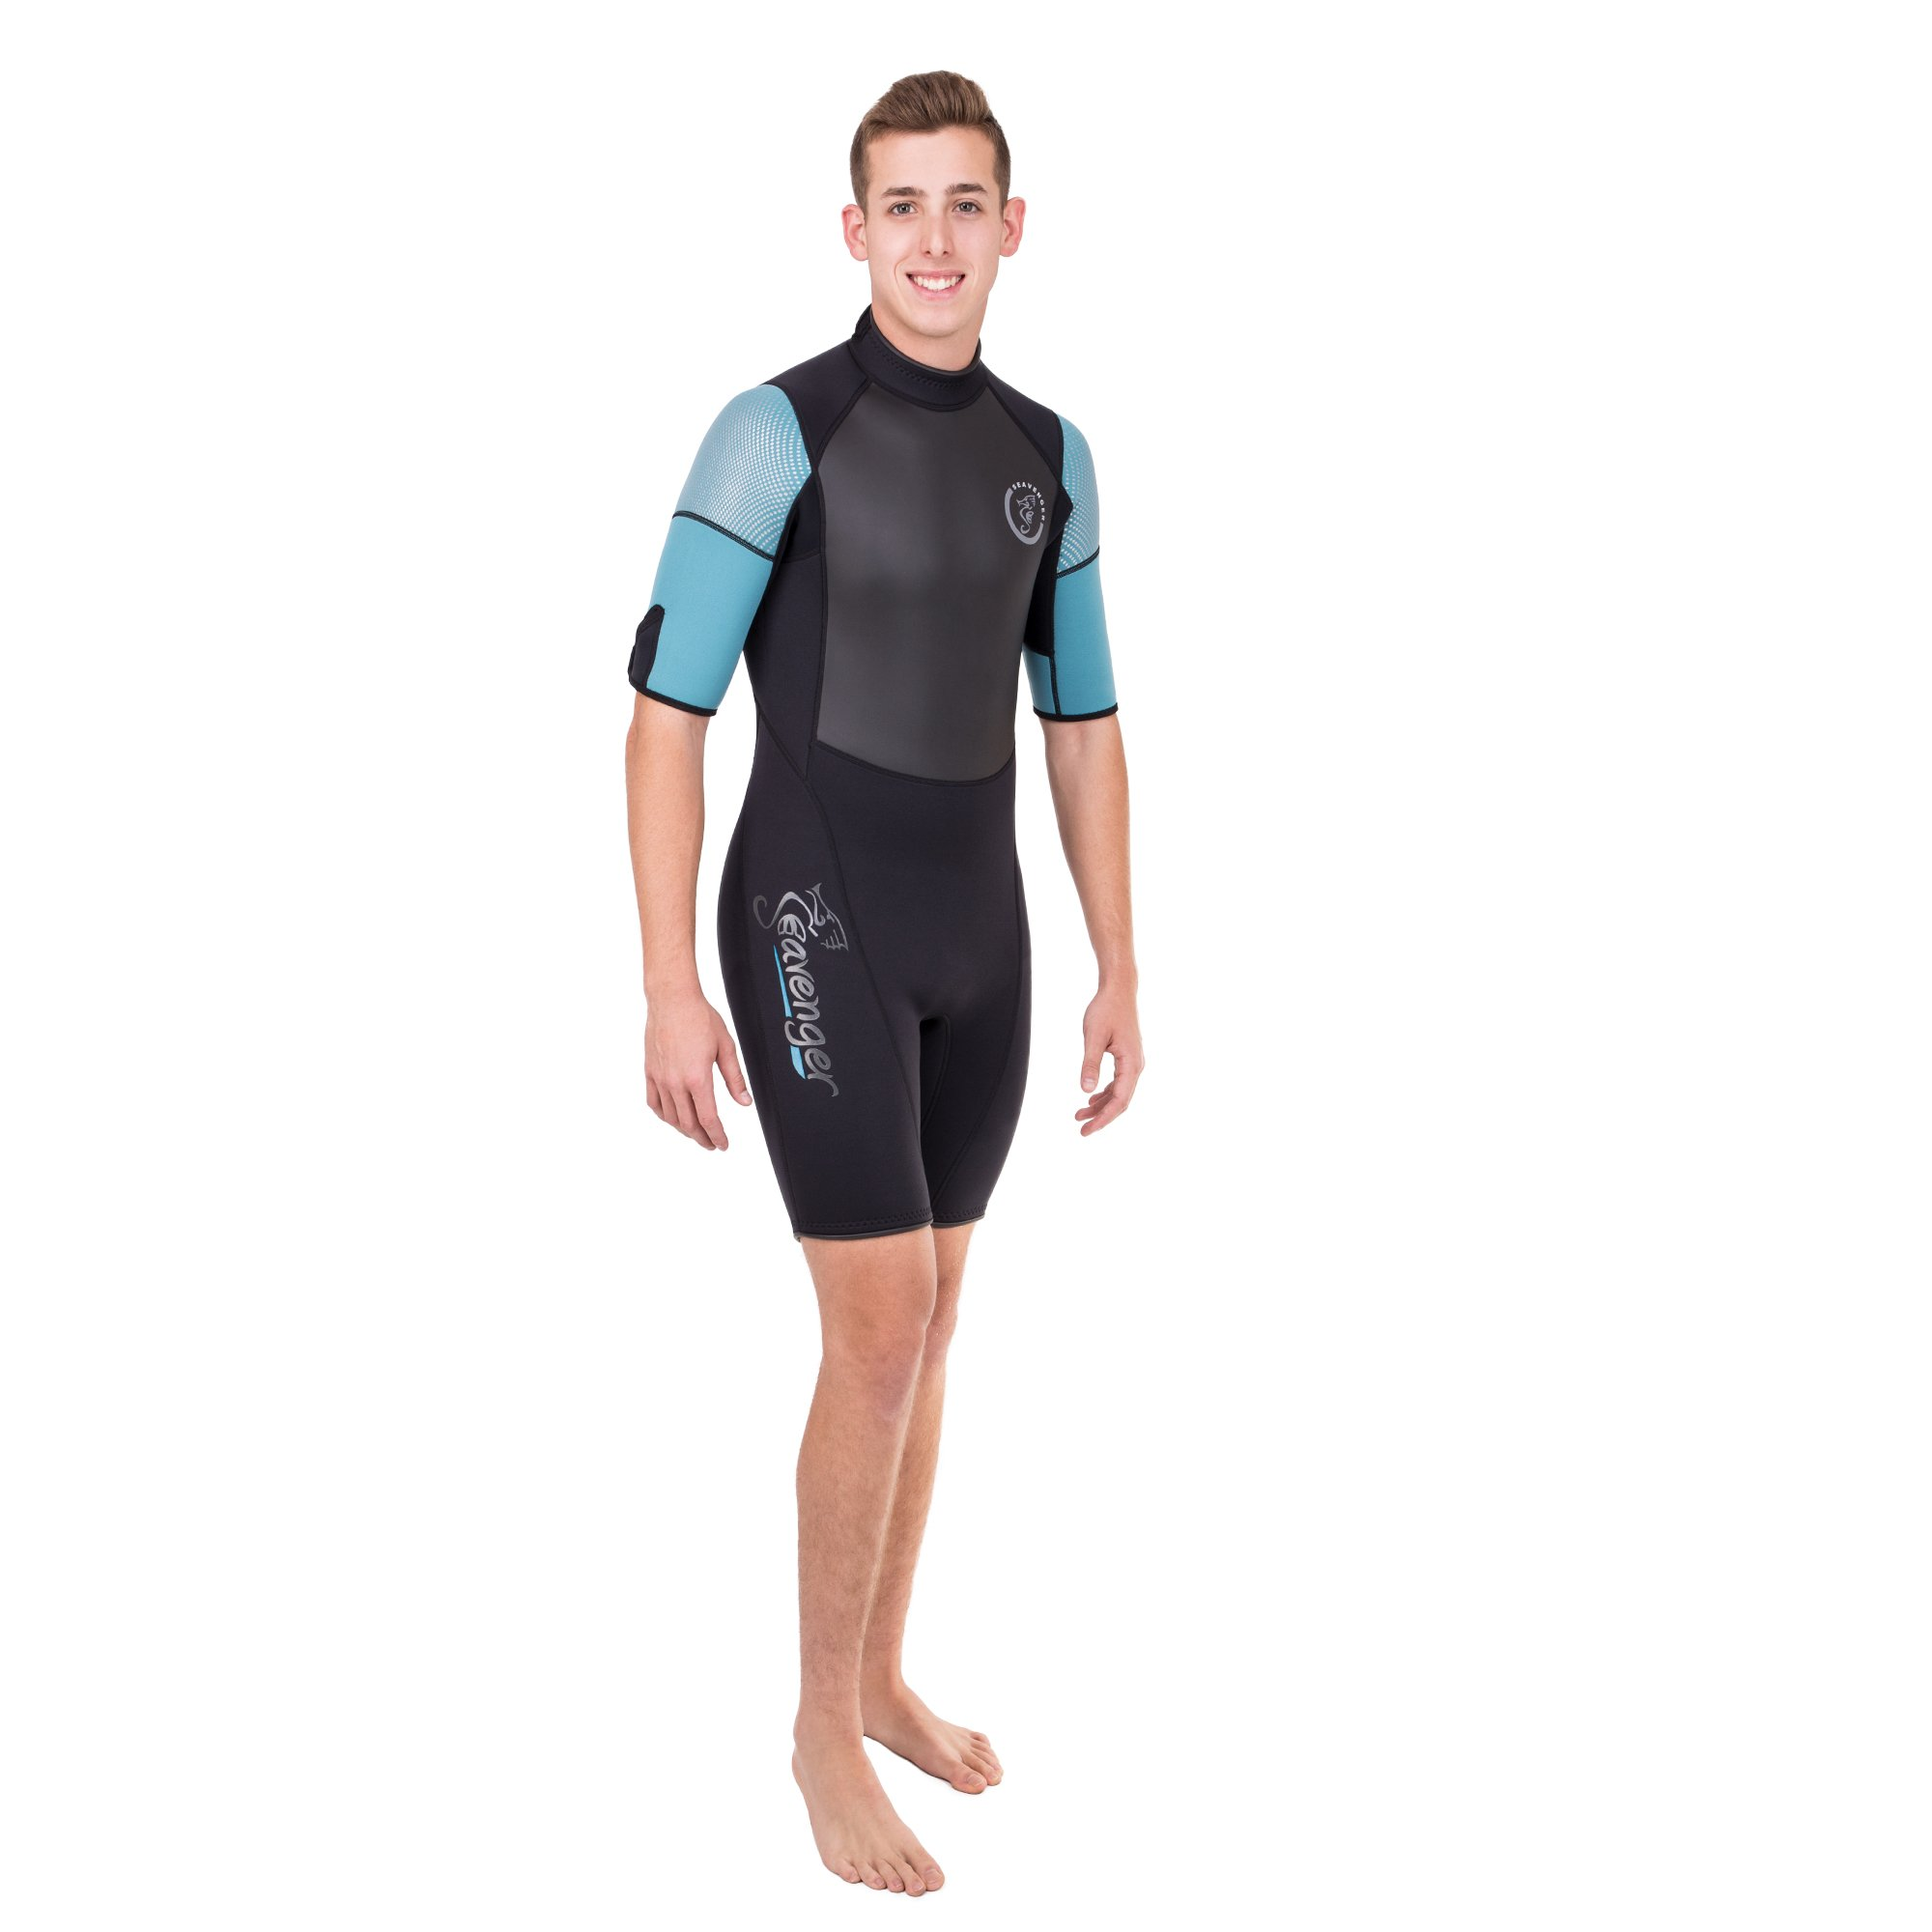 Seavenger Navigator 3mm Shorty | Short Sleeve Wetsuit for Men and Women | Surfing, Snorkeling, Scuba Diving (Surfing Aqua, Men's Small) by Seavenger (Image #2)